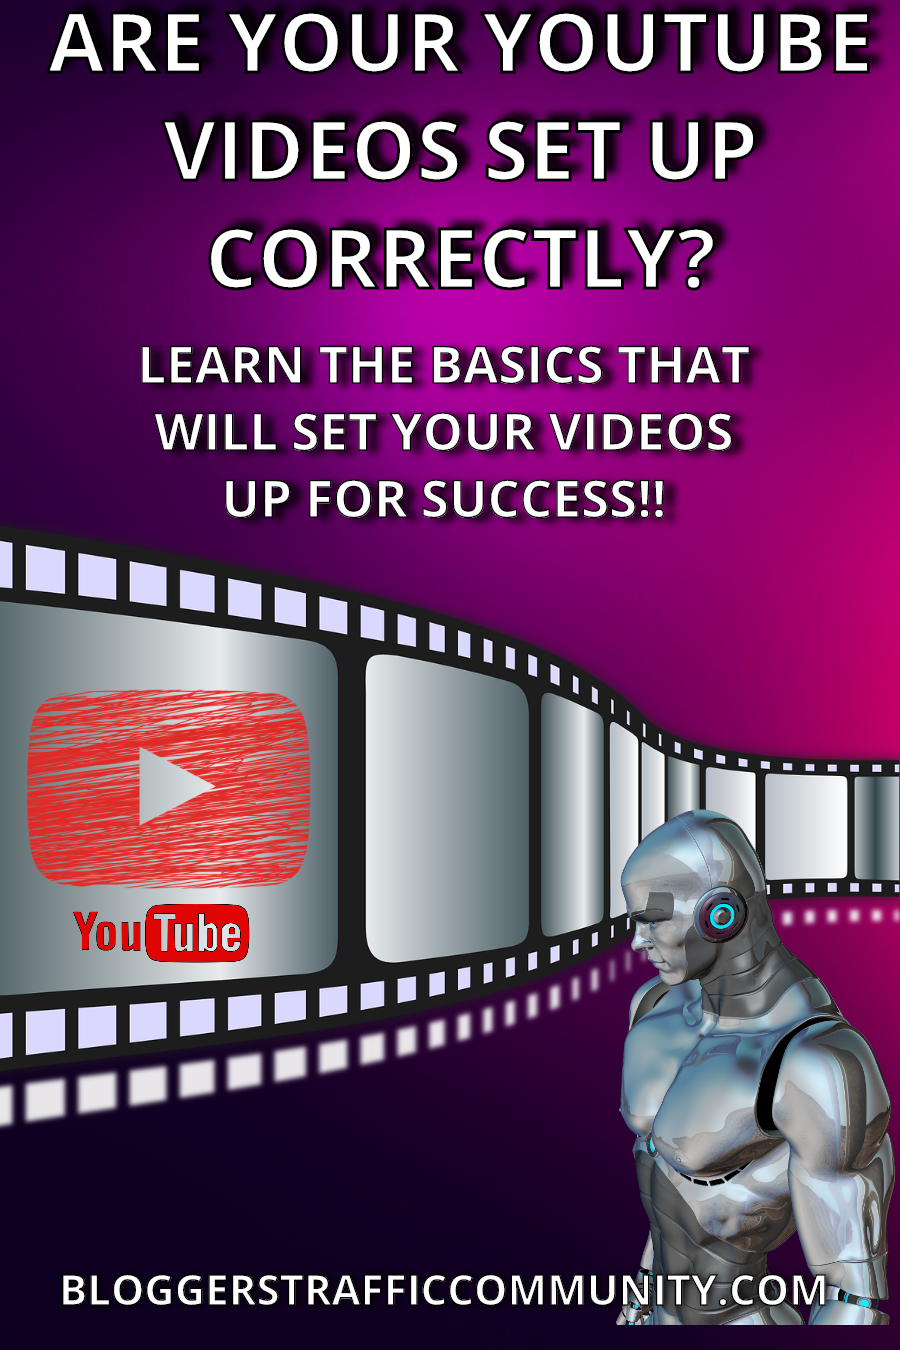 How to set your youtube videos for success